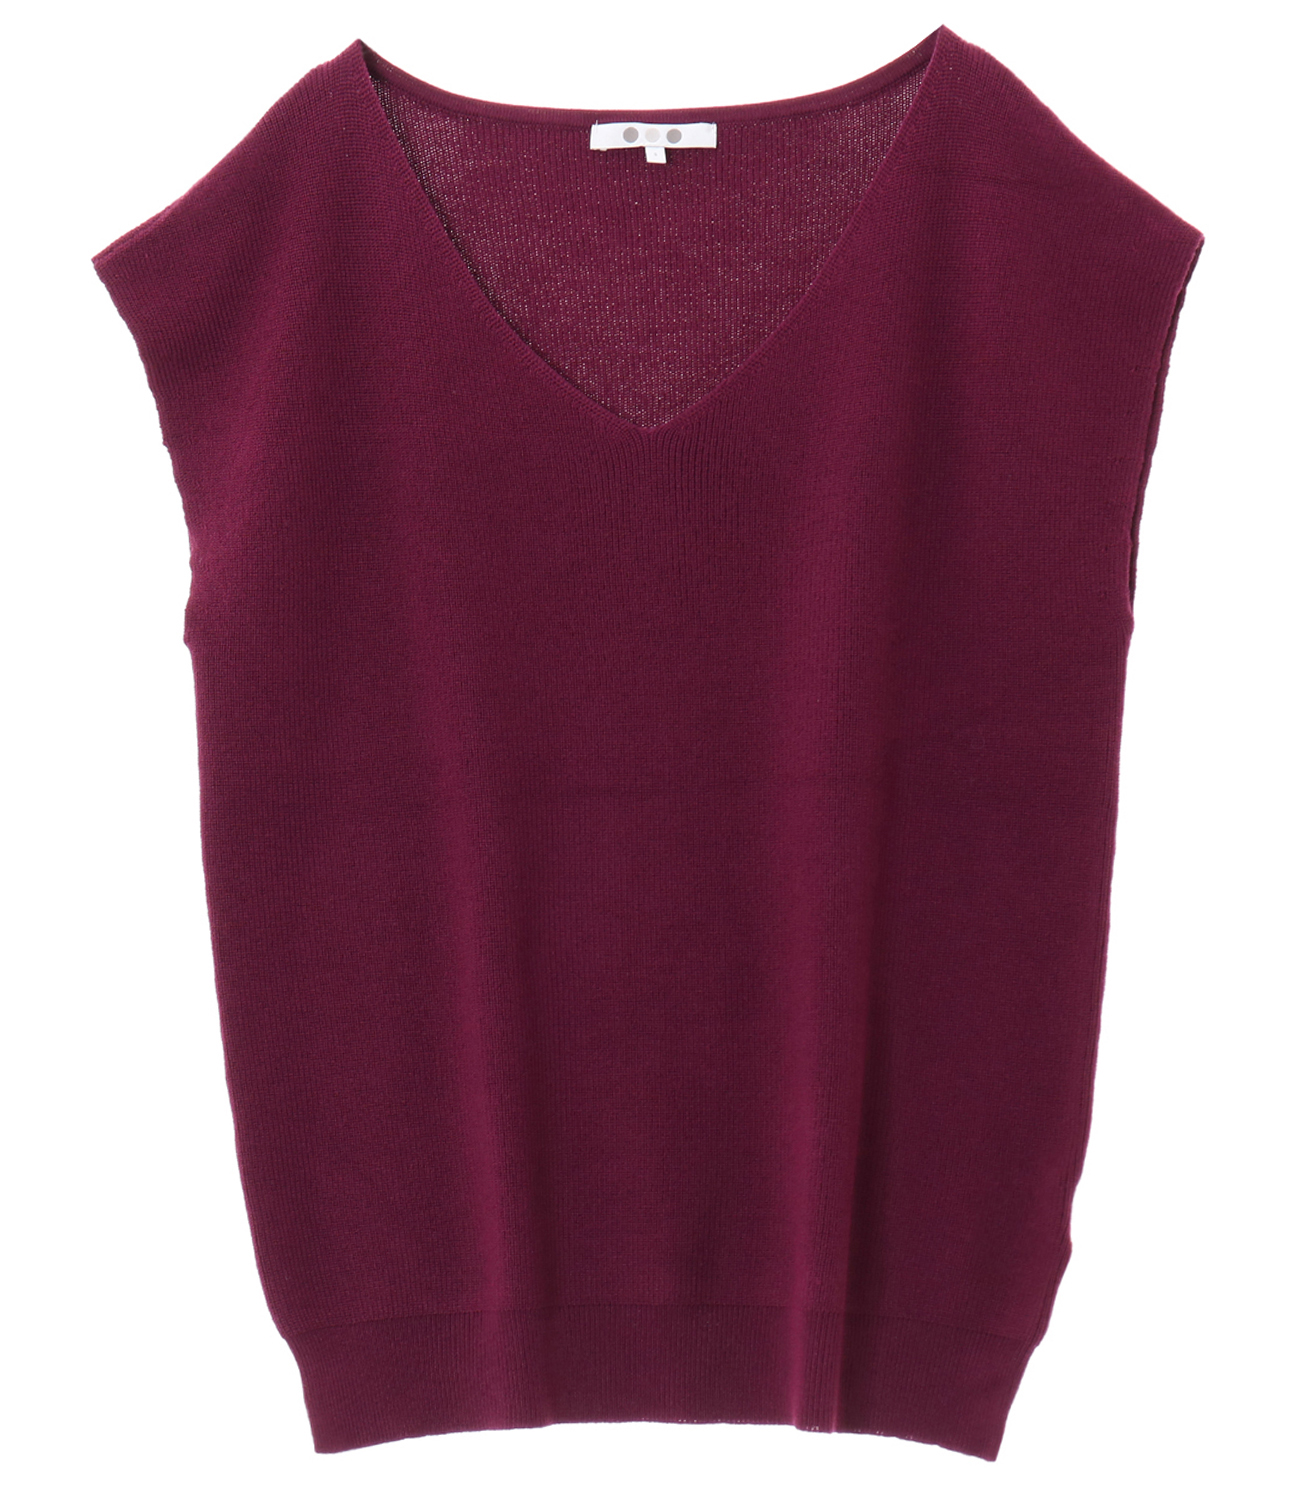 outlast sweater sleeveless vneck 詳細画像 purple 1